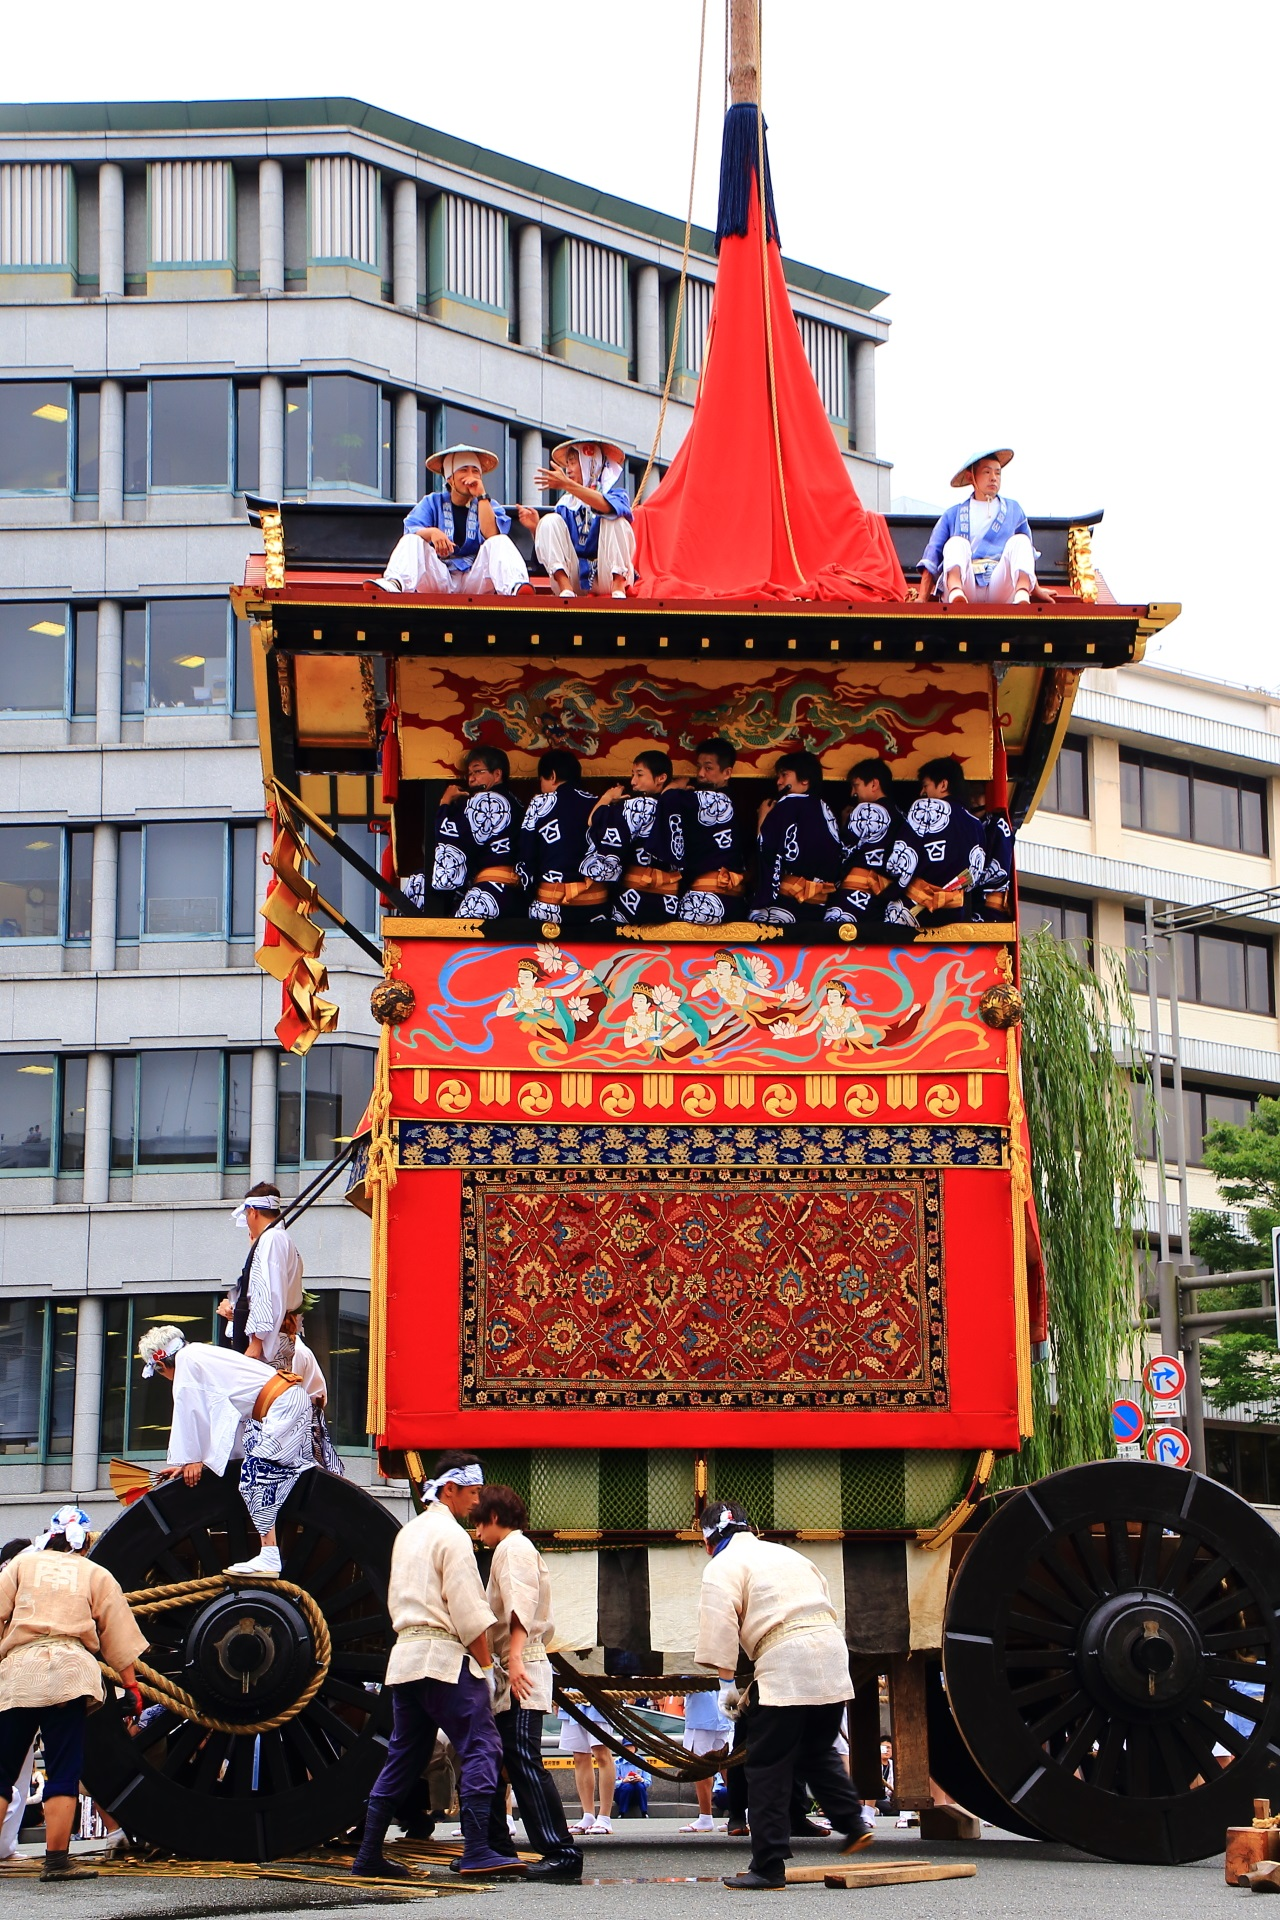 A wonderful Yamahoko-Junko Cruise of the Kyoto Gion Festival